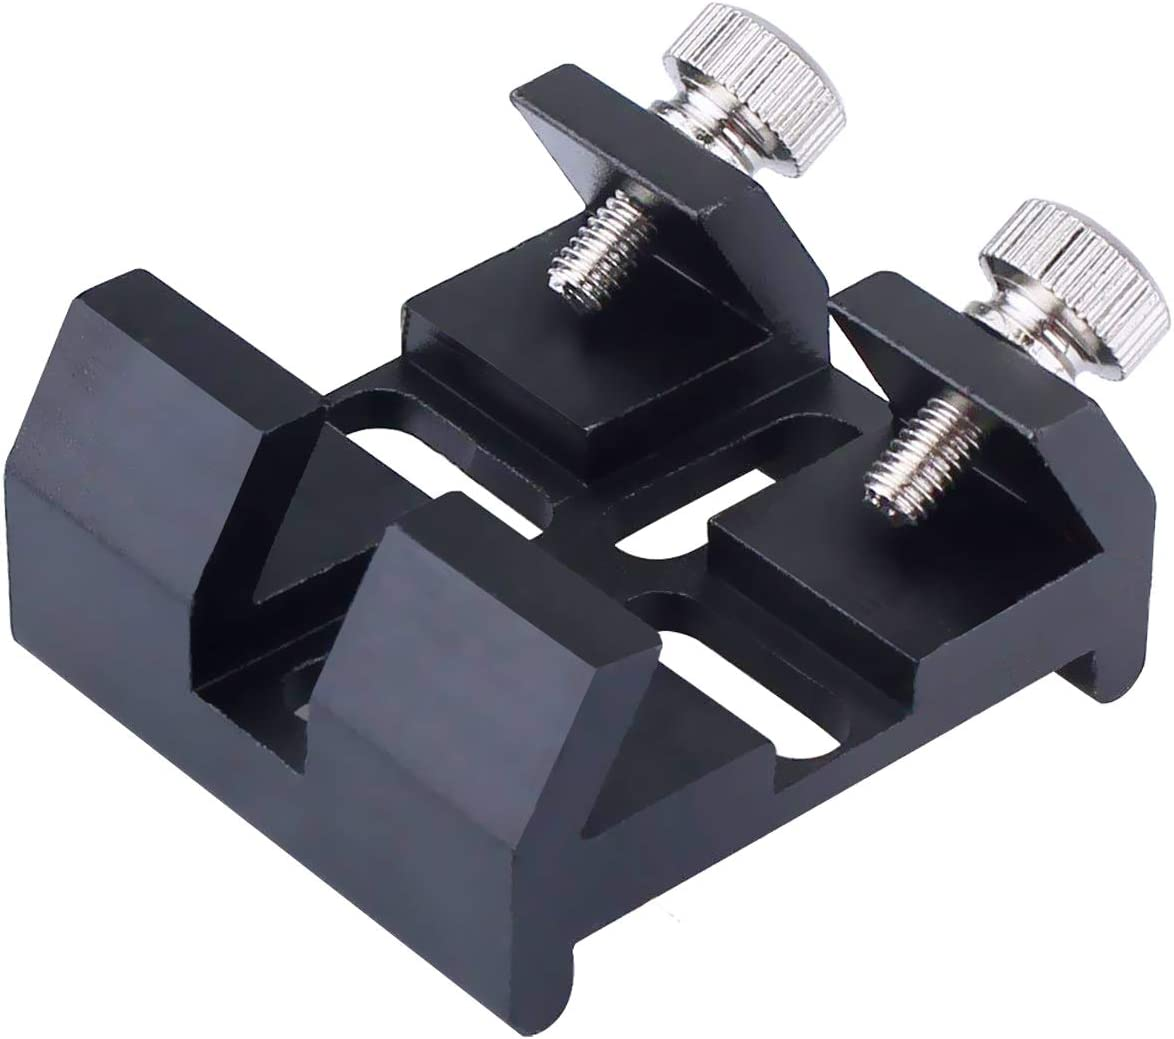 Universal Dovetail Base for Finder Scope - Ideal for Installation of Finder Scope, Green Laser Pointer Bracket Etc - for Sky-Watcher Vixen and Some Celestron Telescope Dovetail Accessories